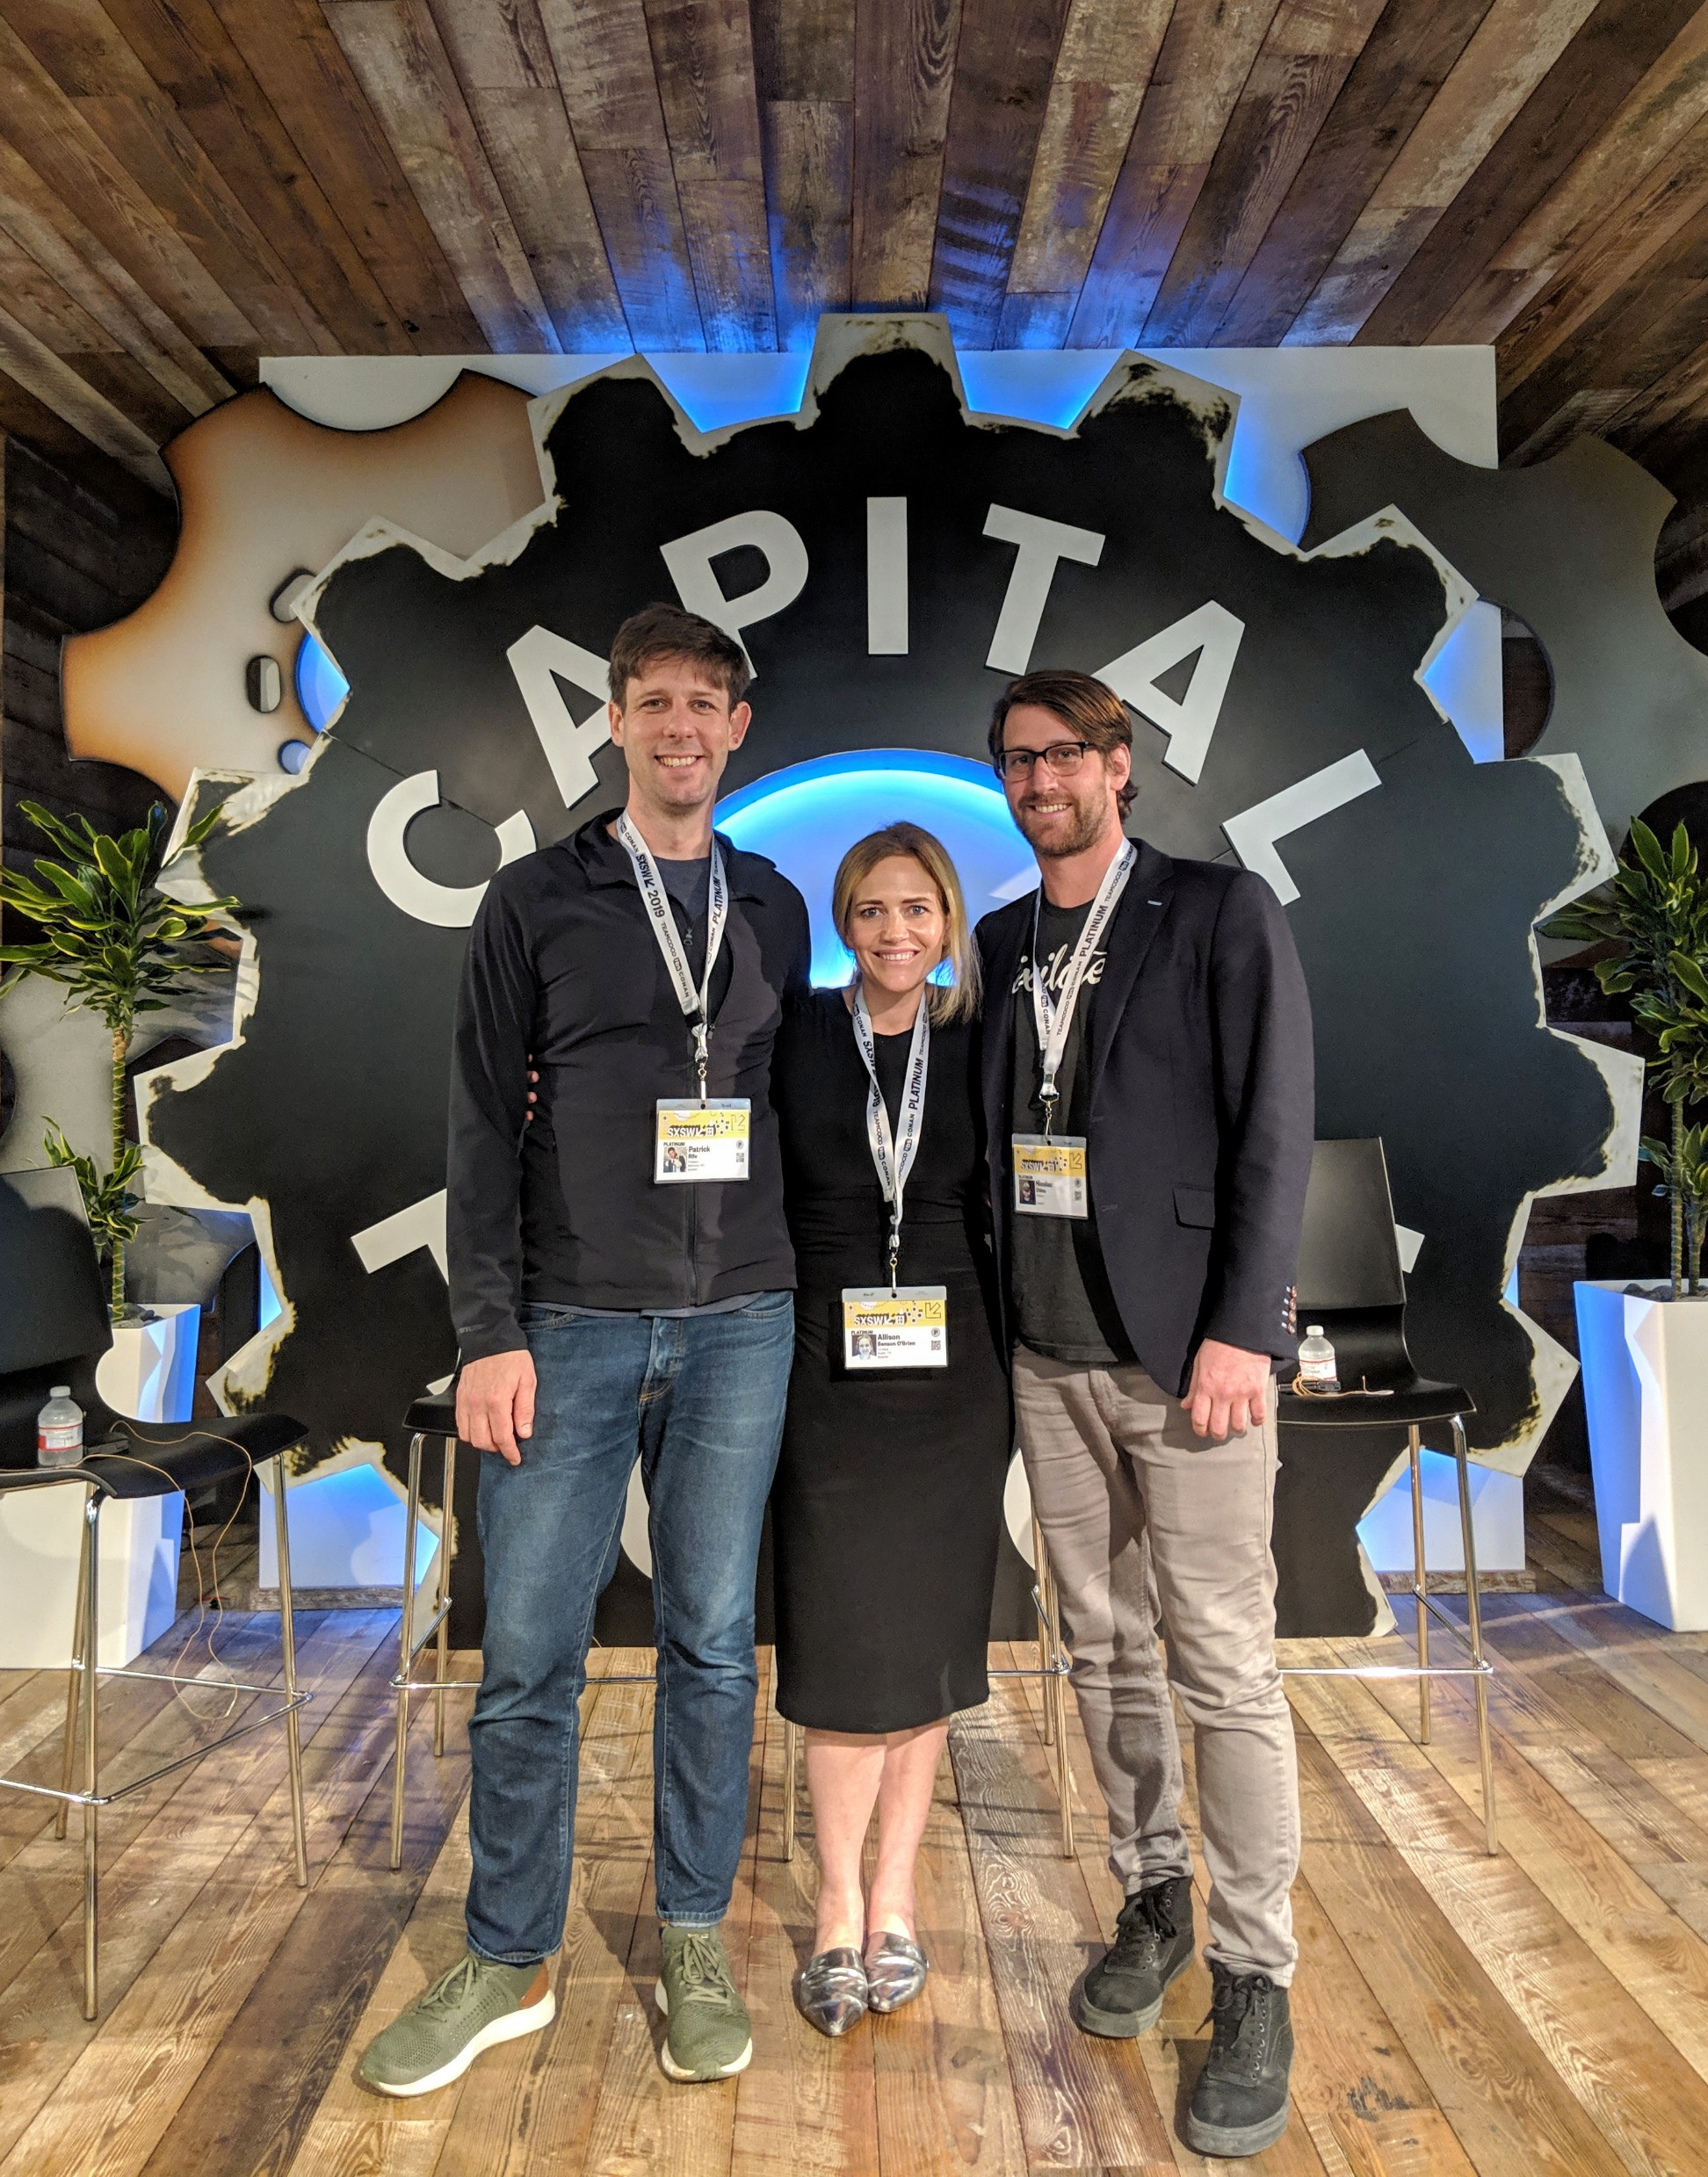 Picture Perfect Lead Generation - Patrick Rife, CVO of Pixilated, Allison Benson O'Brien Director of Communications at 14 West, Nicolas China, CEO of Pixilated